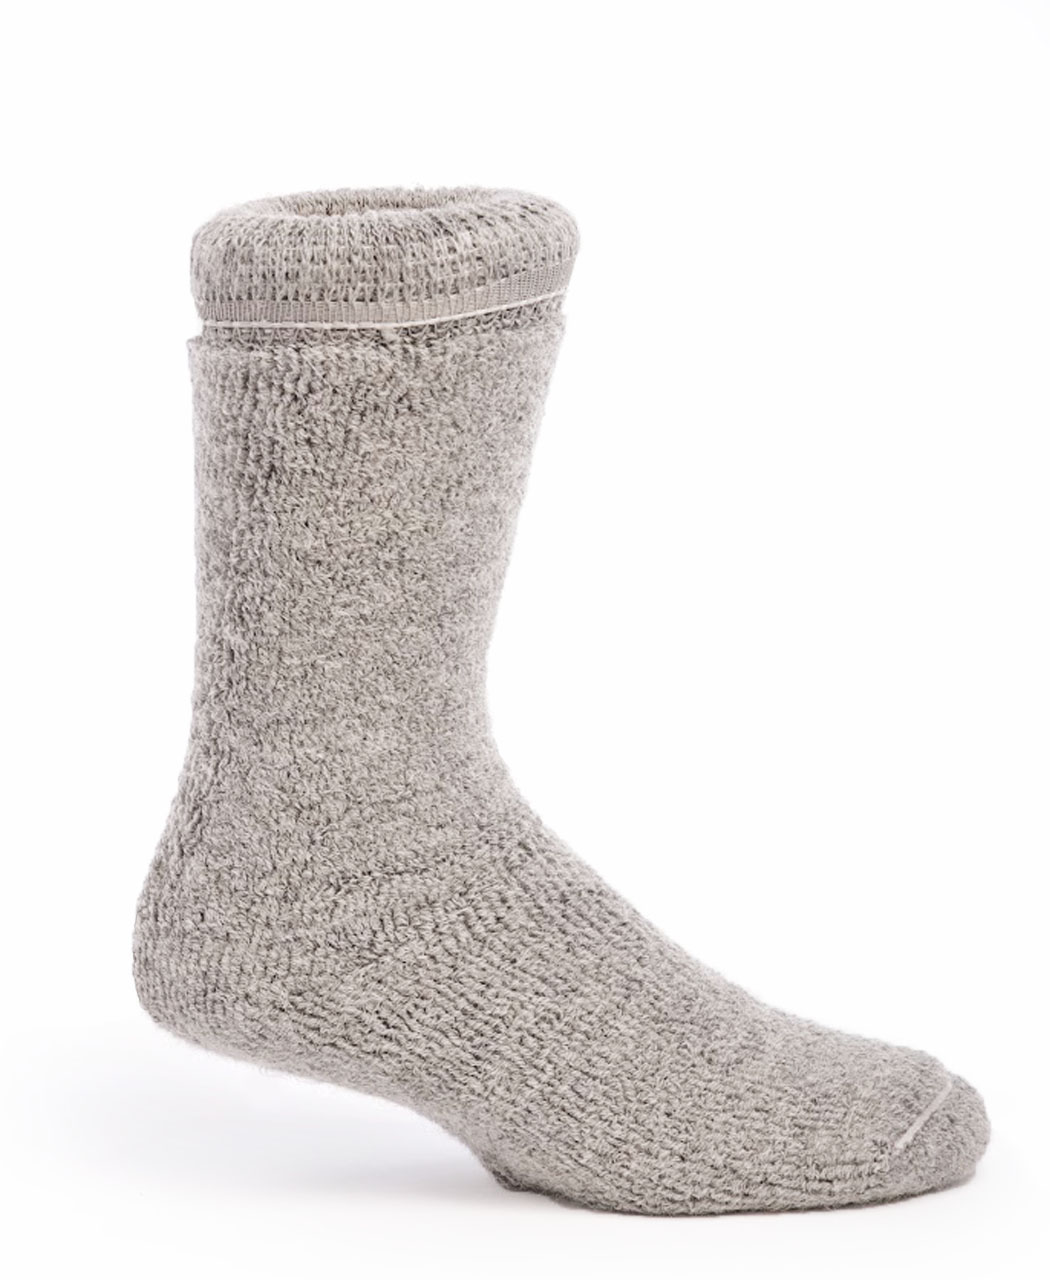 Toasty Toes Comfort Band - Ultimate Alpaca Socks Inside